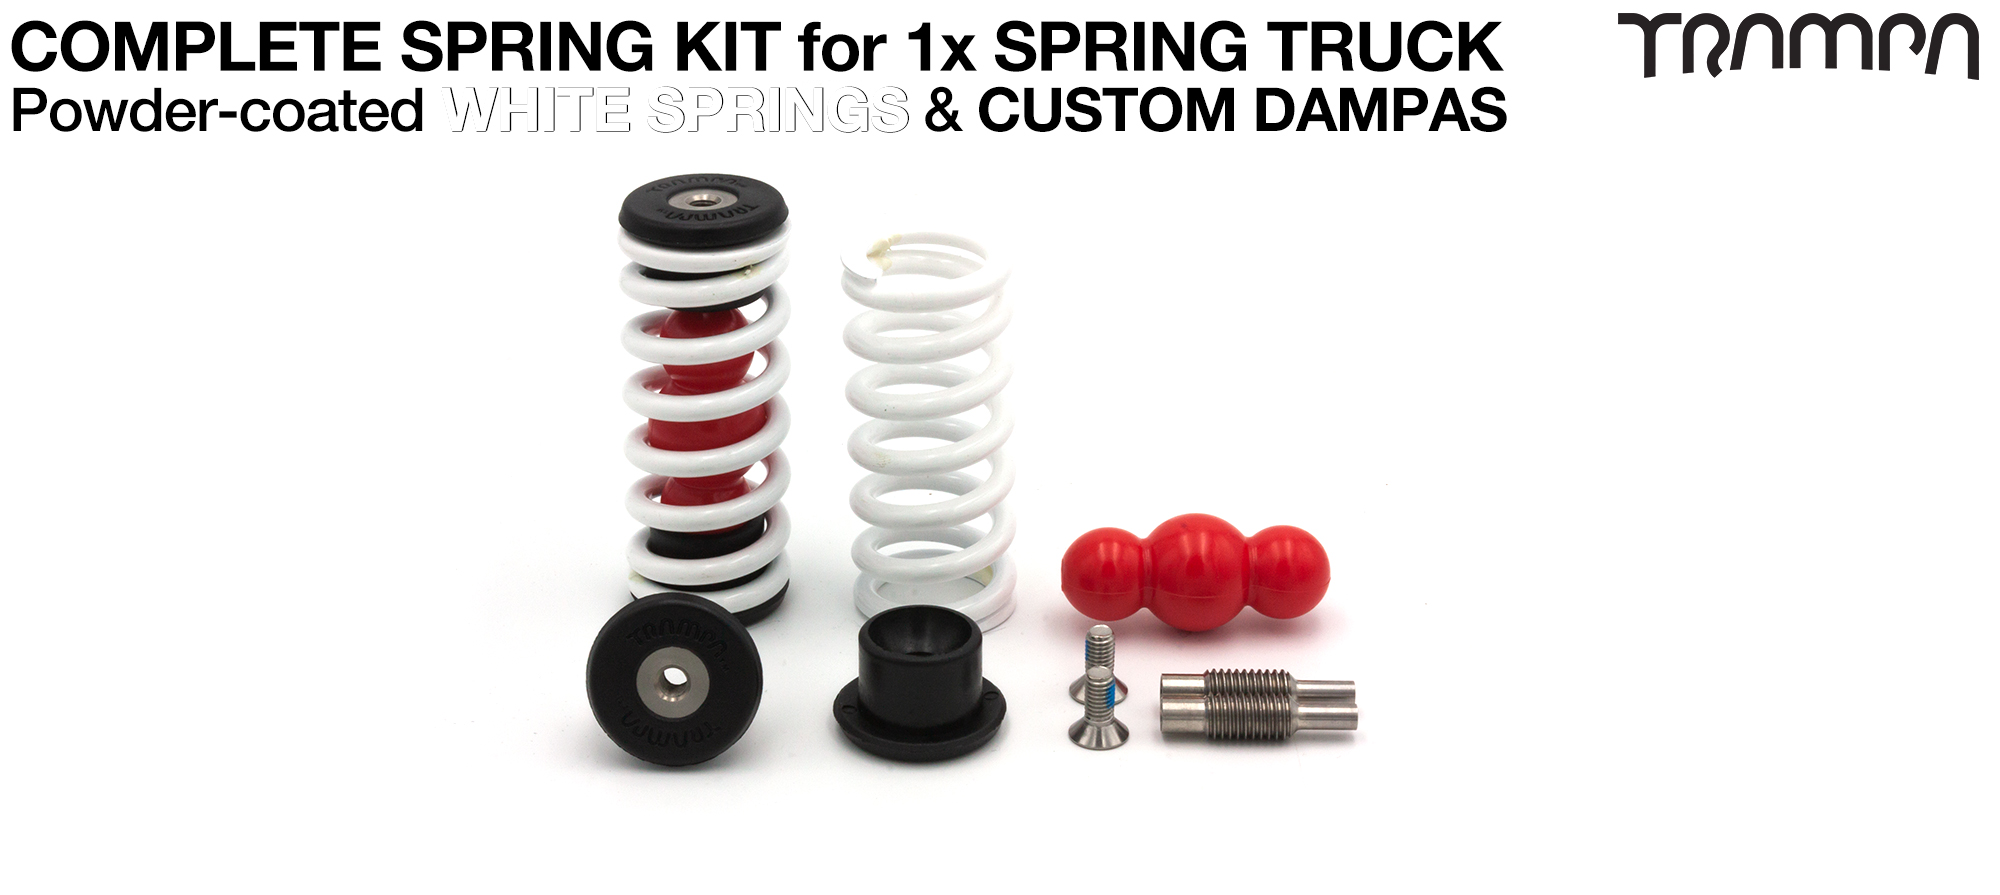 Spring kit Complete for 1x Truck - 2x Spring 2x Dampa 4x Spring Retainers 2x Spring Adjuster & 2 M5x12mm Countersunk Bolt WHITE Springs